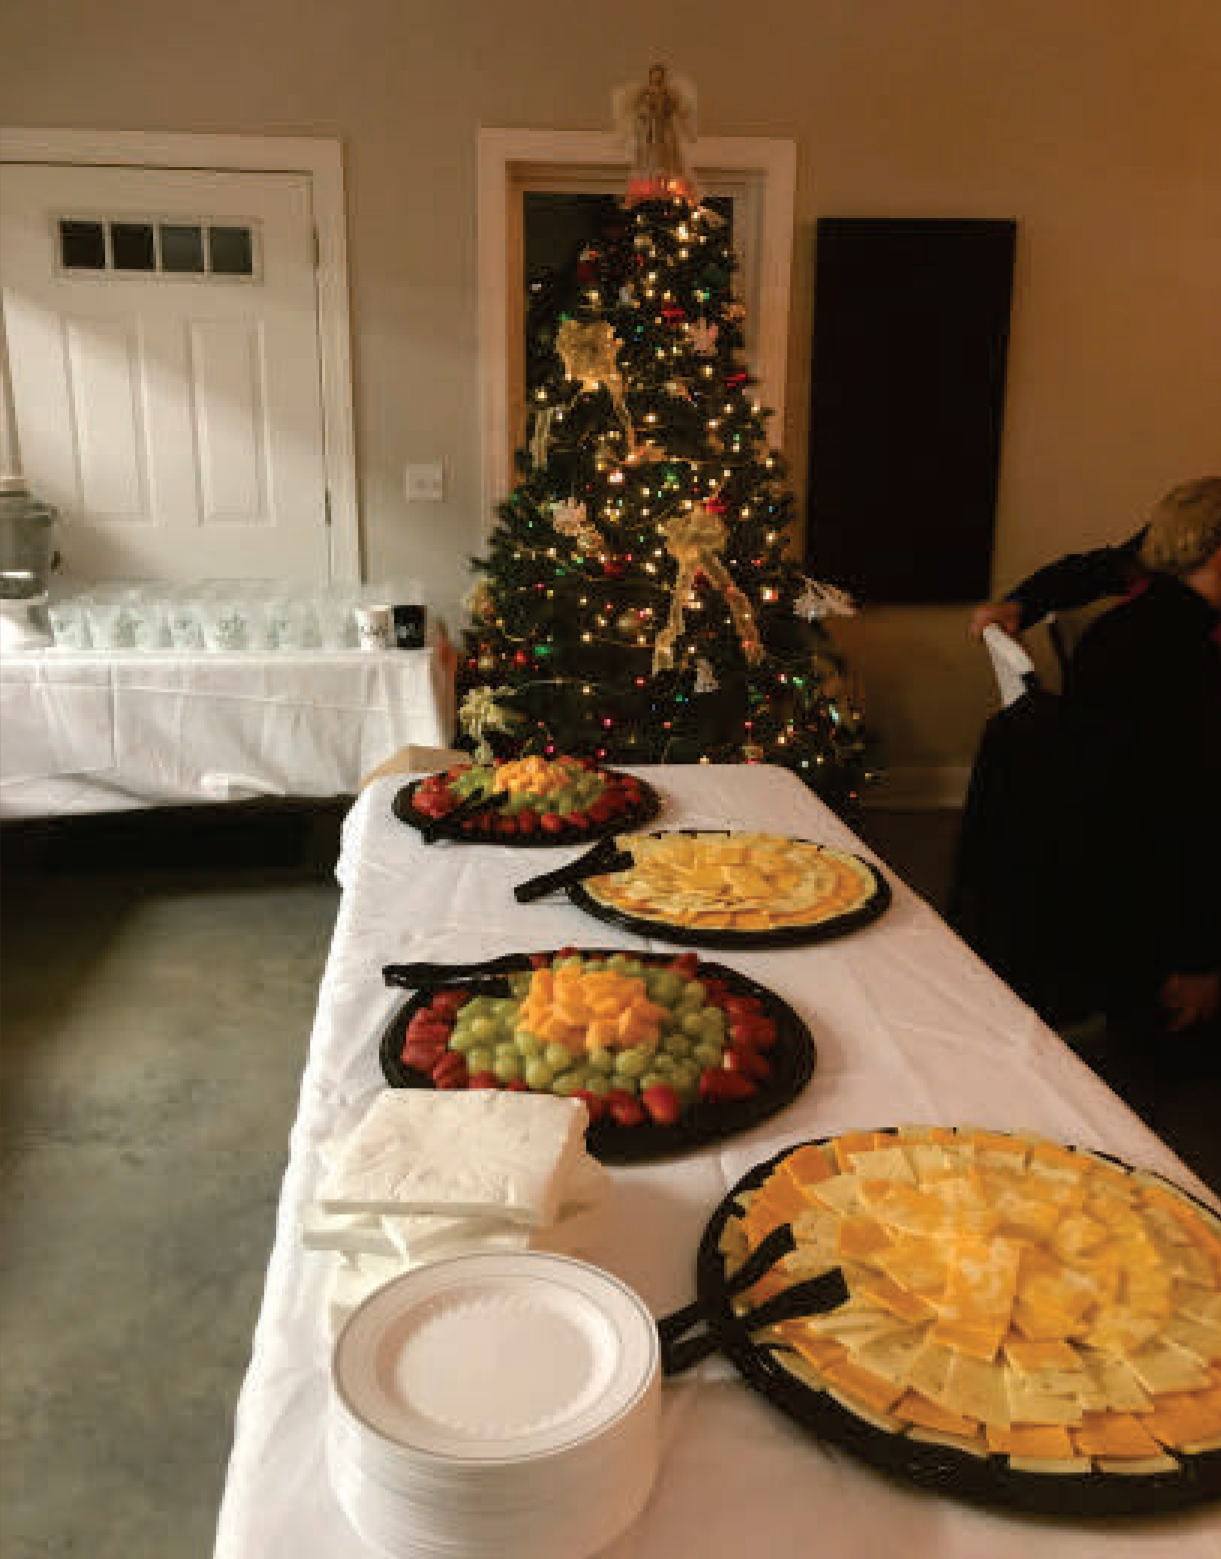 buffet table with assortment of food on round trays with plates and napkins. a decorated christmas tree is in the background.